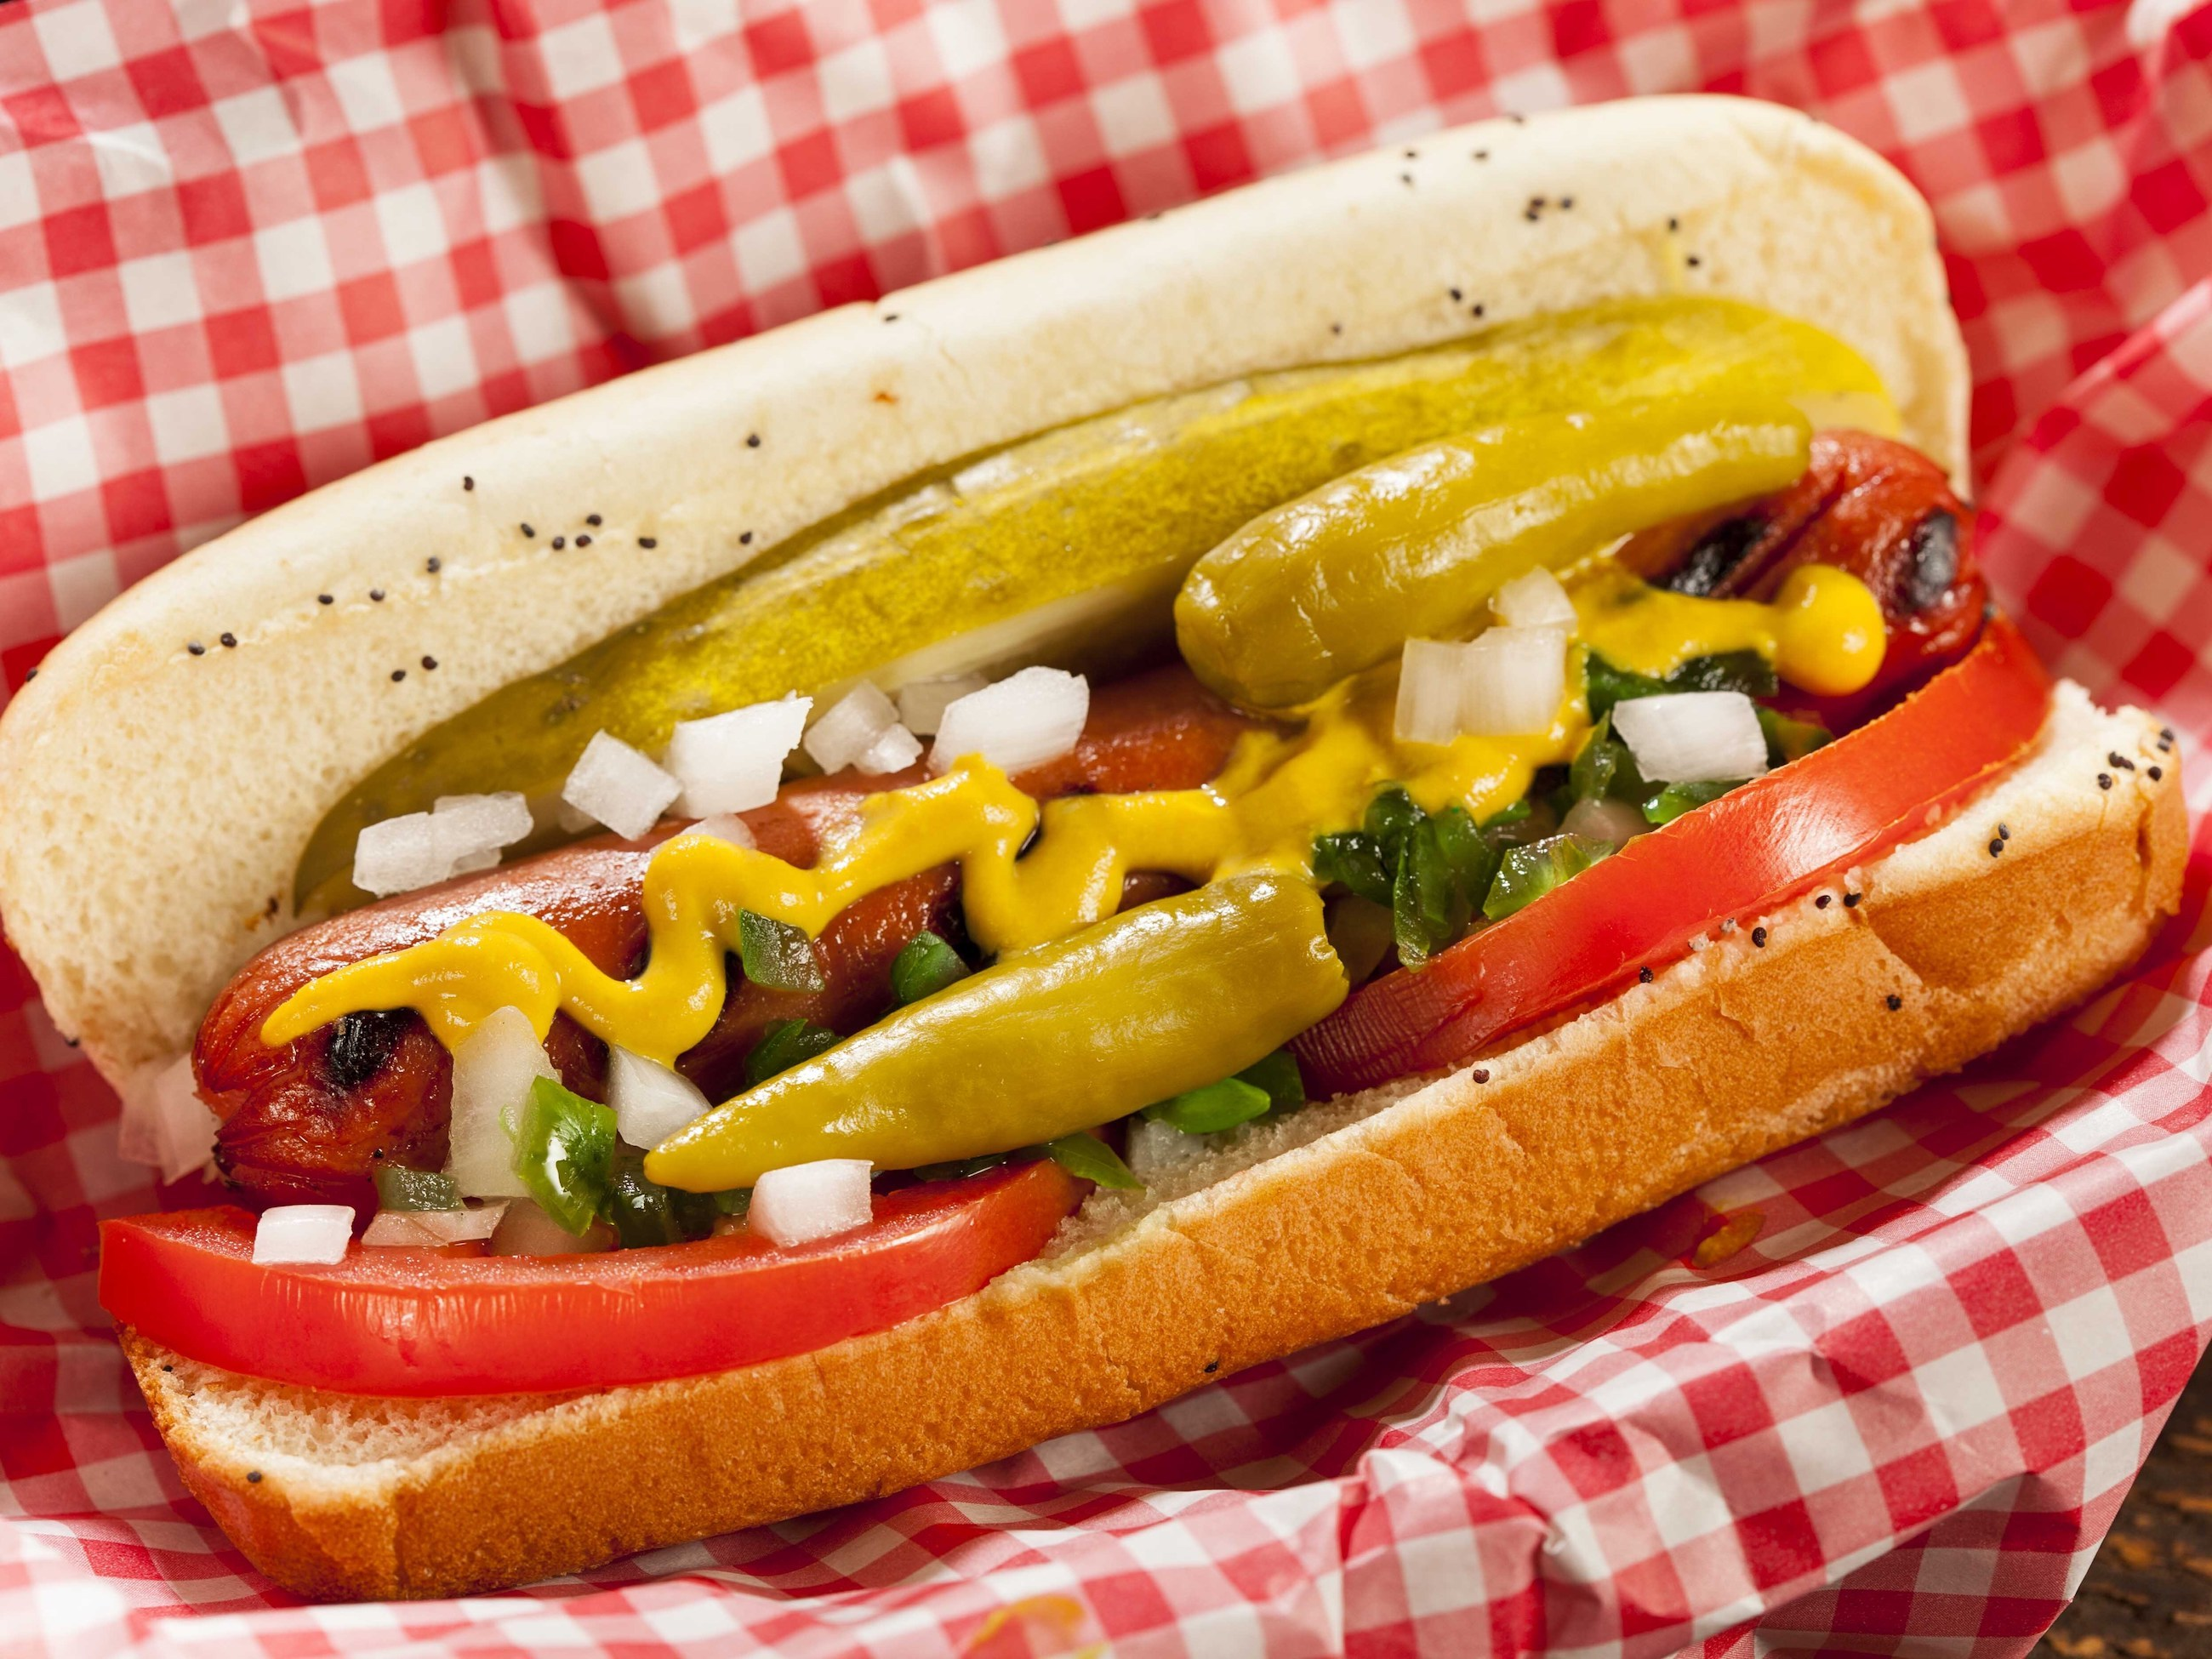 Wiener Circle offers a side of 'curbside abuse' with to-go orders